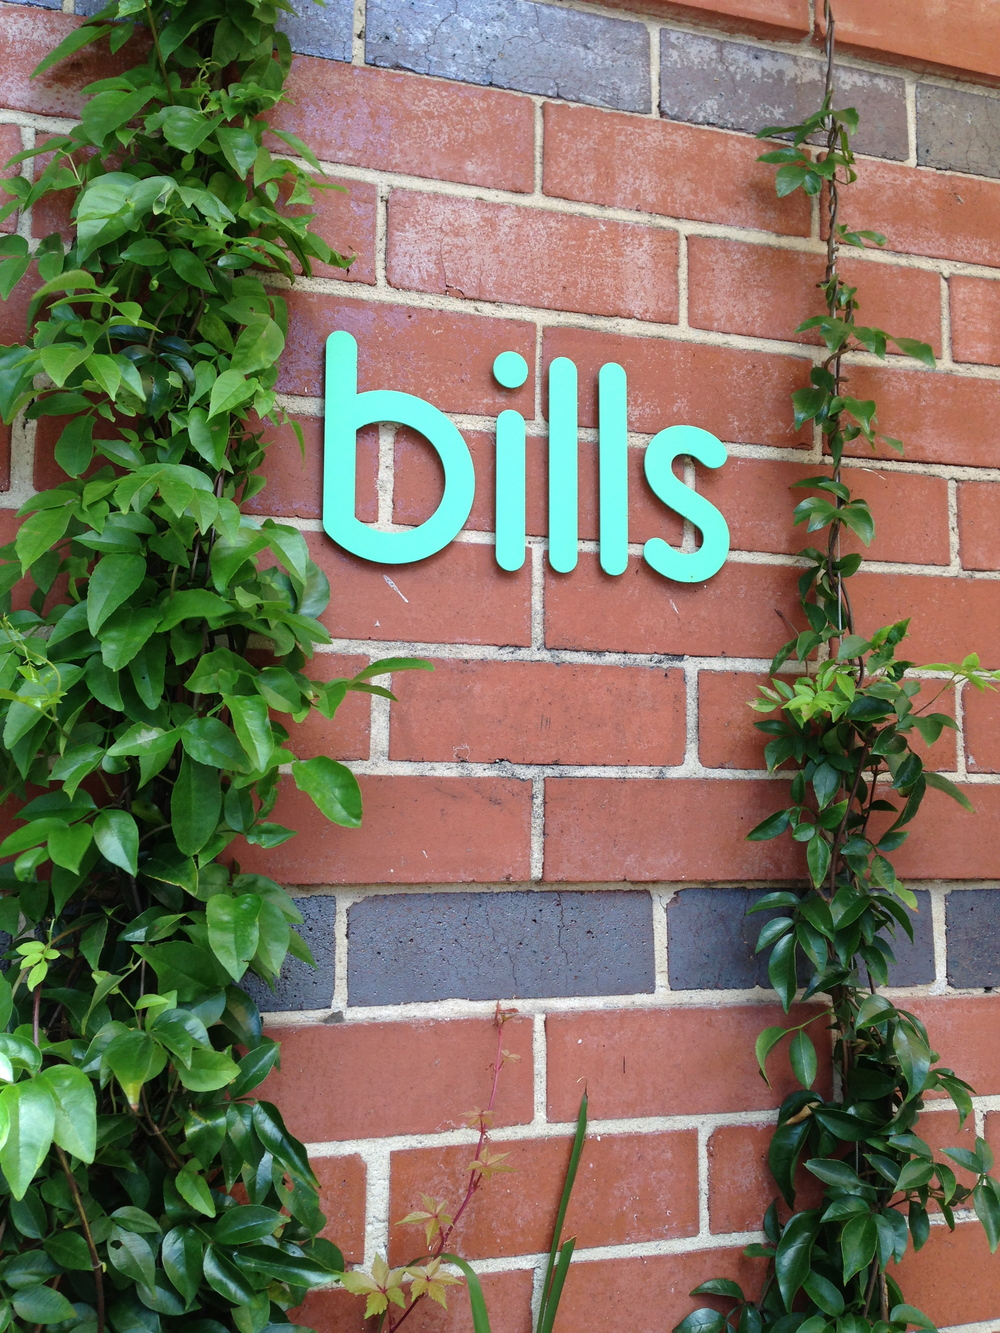 bills,  359 Crown St Surry Hills, Sydney.